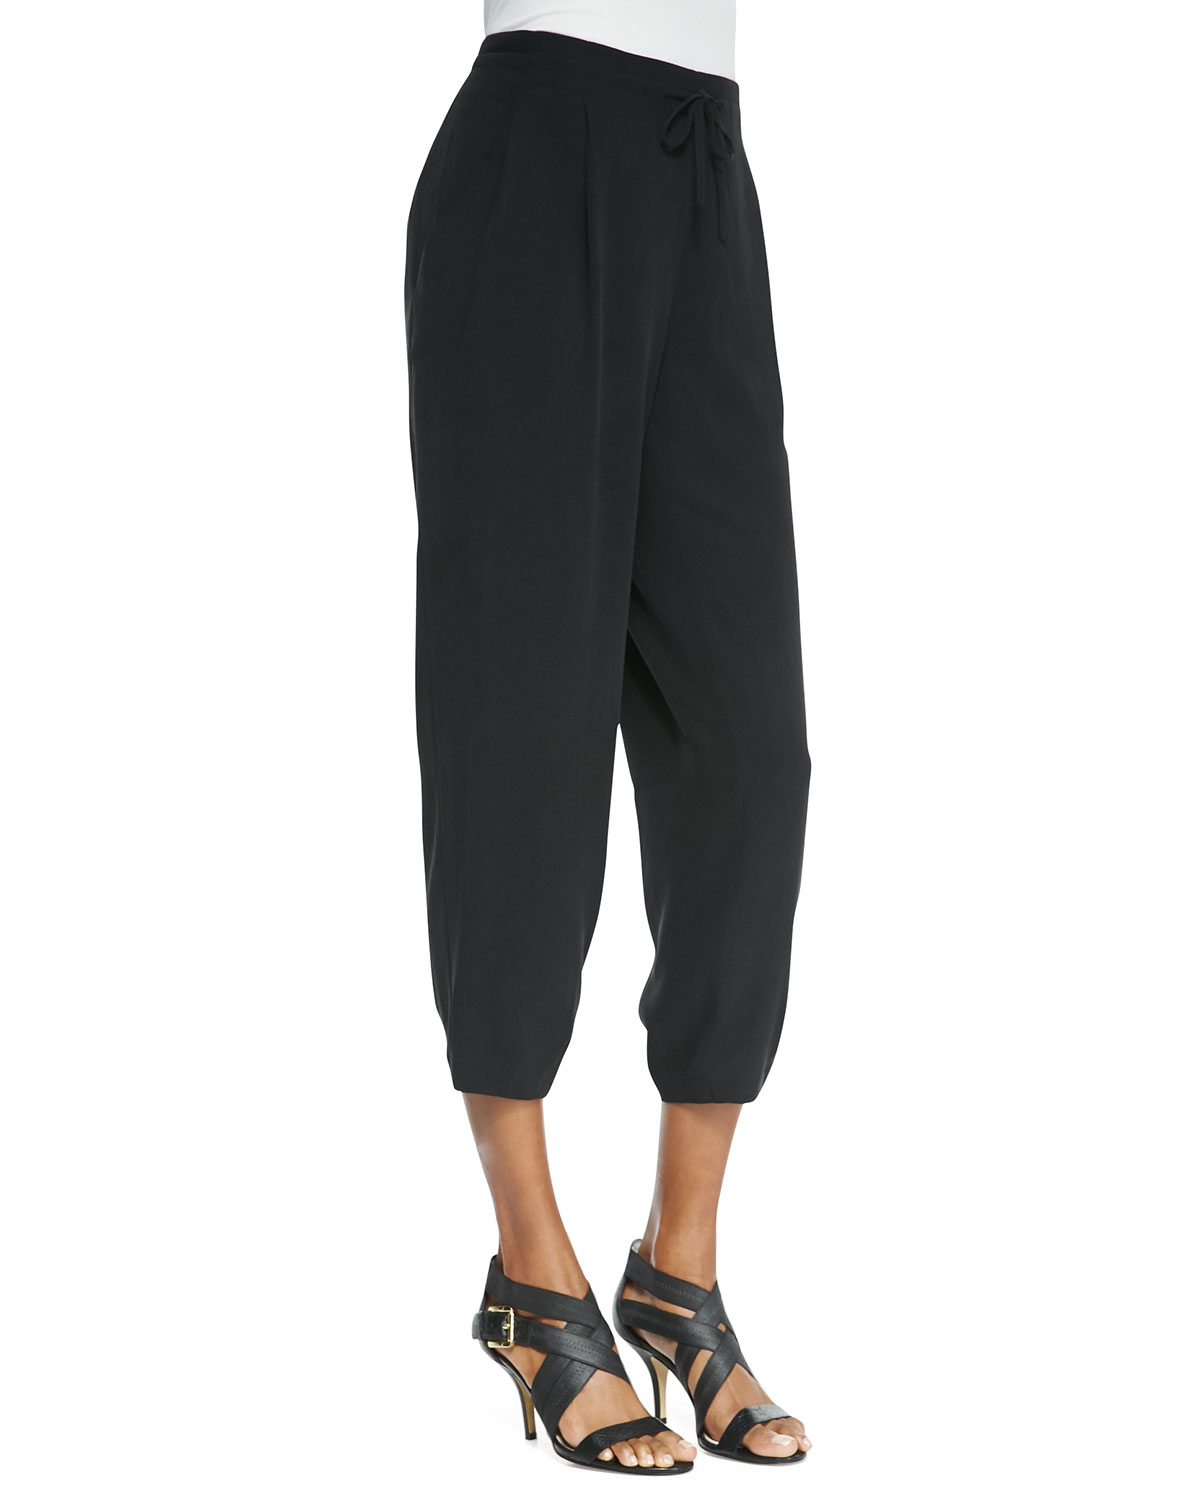 Eileen fisher Silk Drawstring Cropped Pants in Black | Lyst